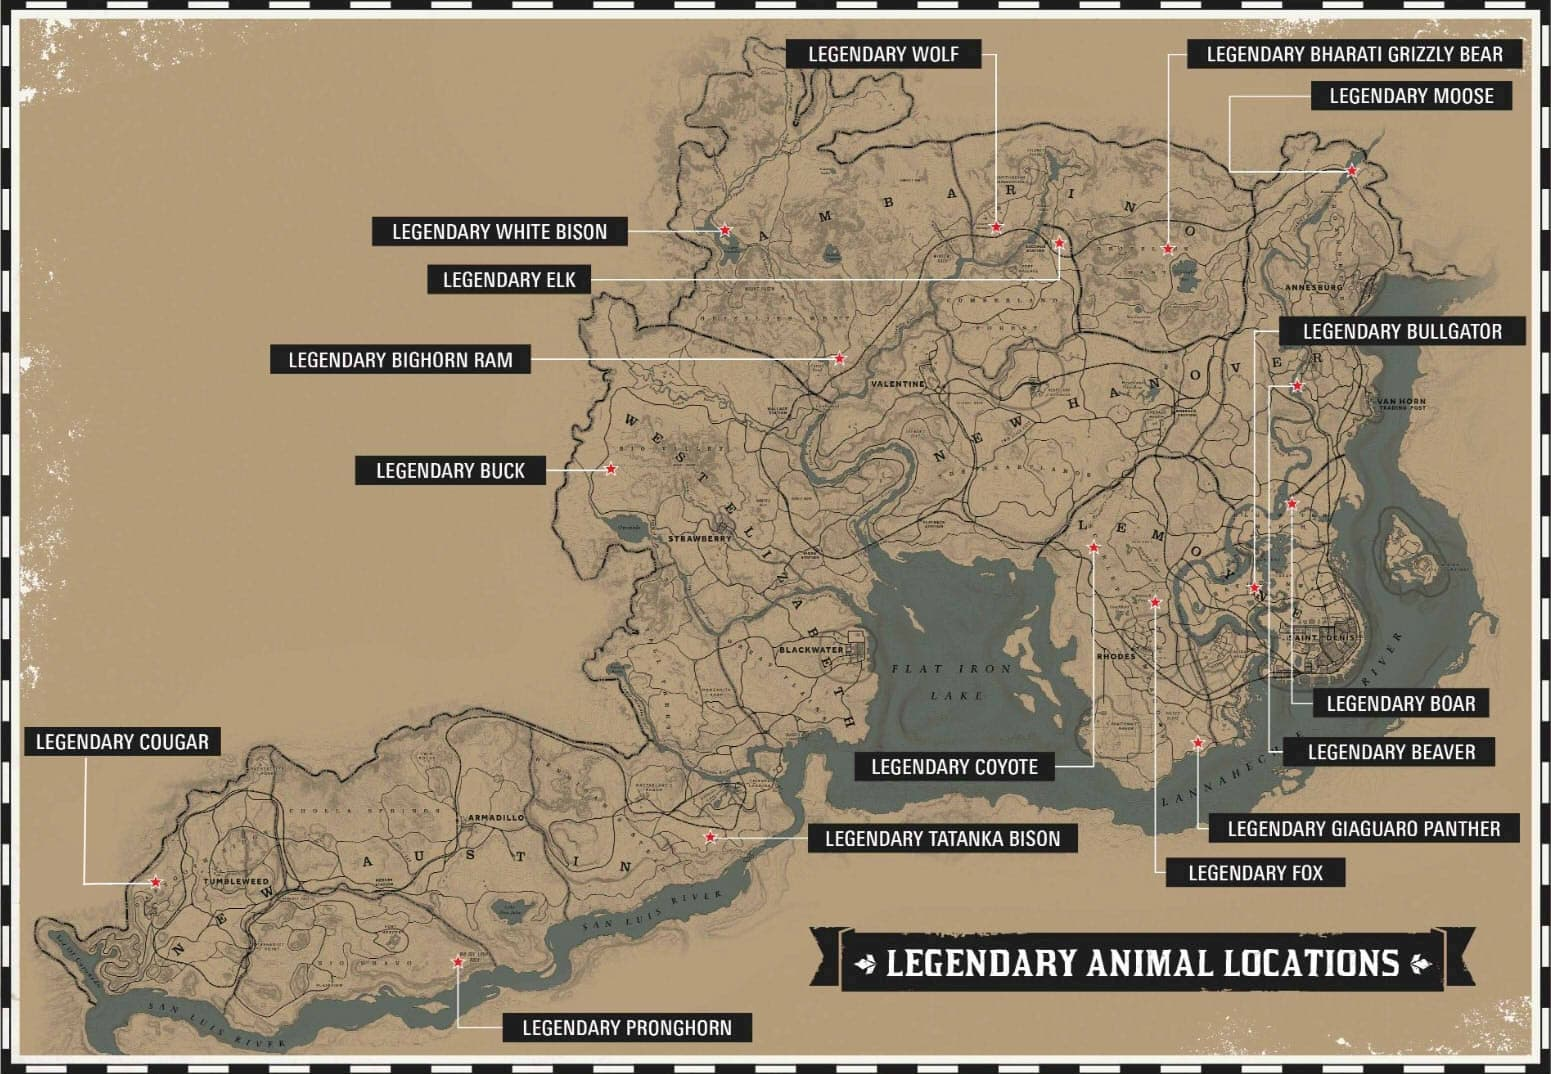 Map of the legendary animals in Red Dead Redemption 2